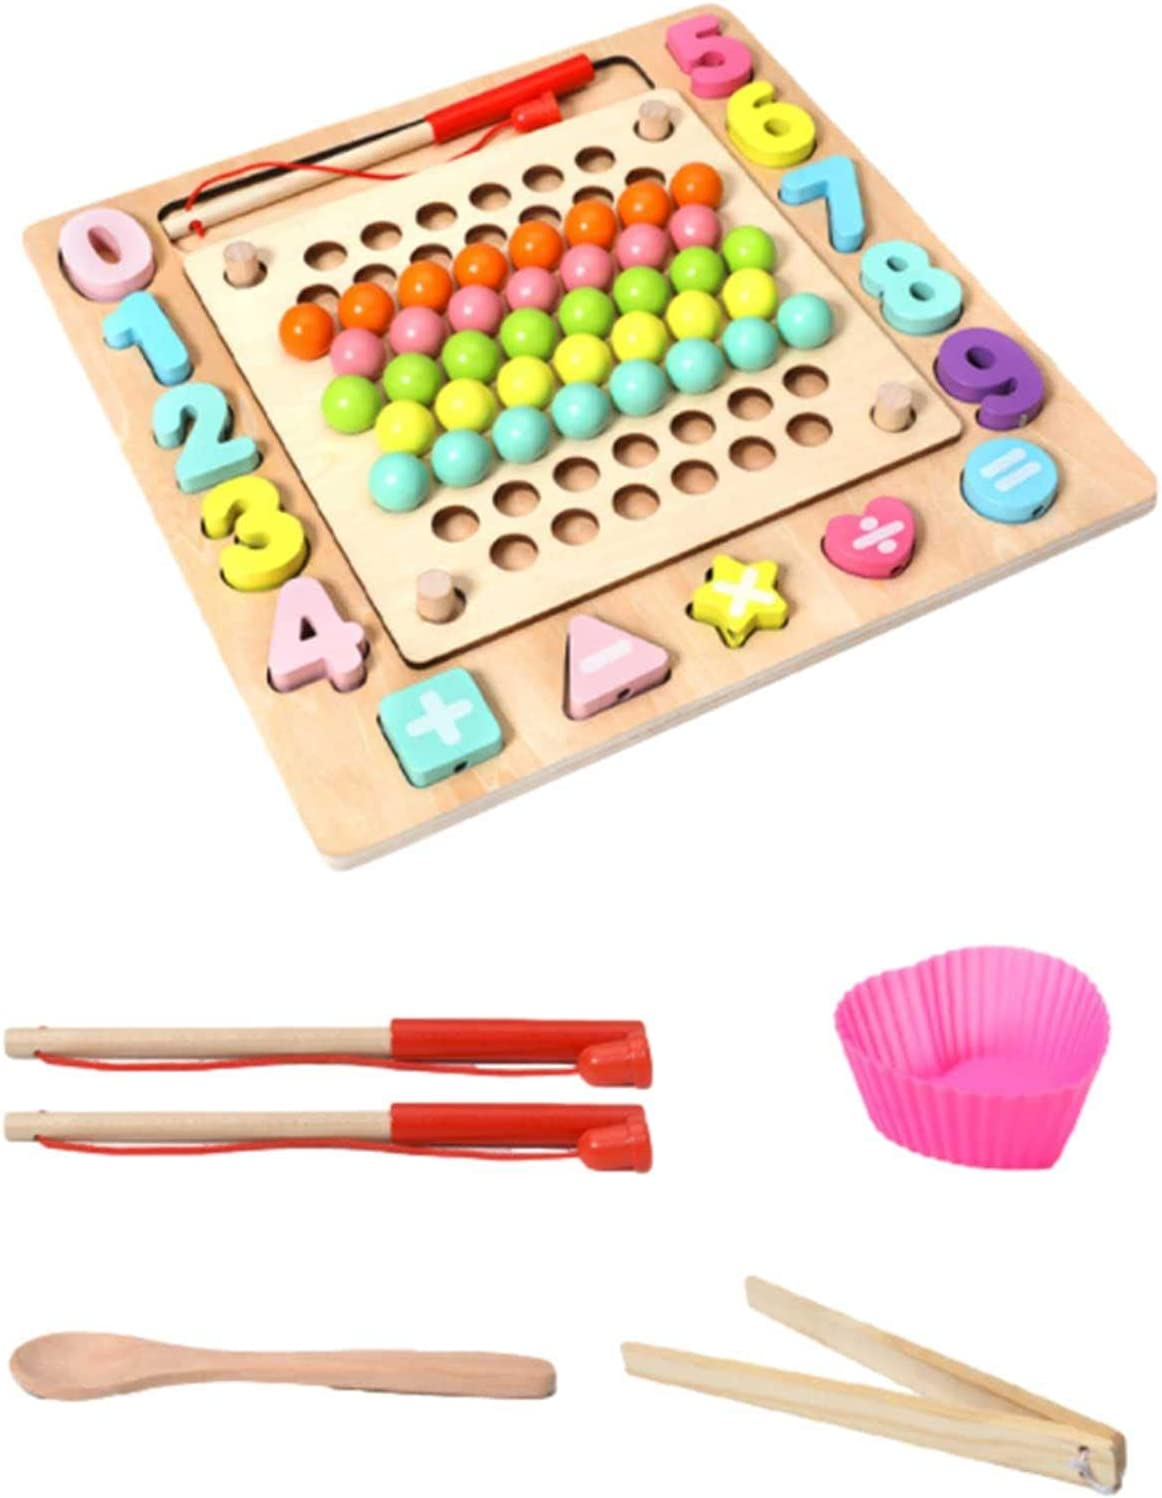 Wooden Super special price Peg Board Beads Game P Clip Rainbow Go Games Max 83% OFF